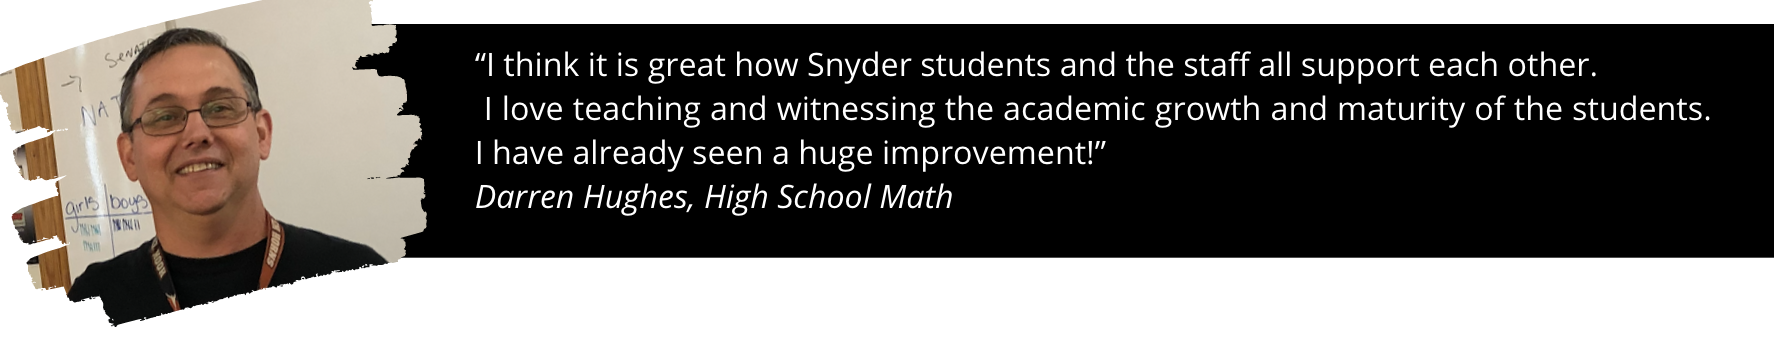 """Photo of Mr. Huges and quote: """"I think it is great how Snyder students and the staff all support each other.  I love teaching and witnessing the academic growth and maturity of the students. I have already seen a huge improvement!""""  Darren Hughes, High School Math"""